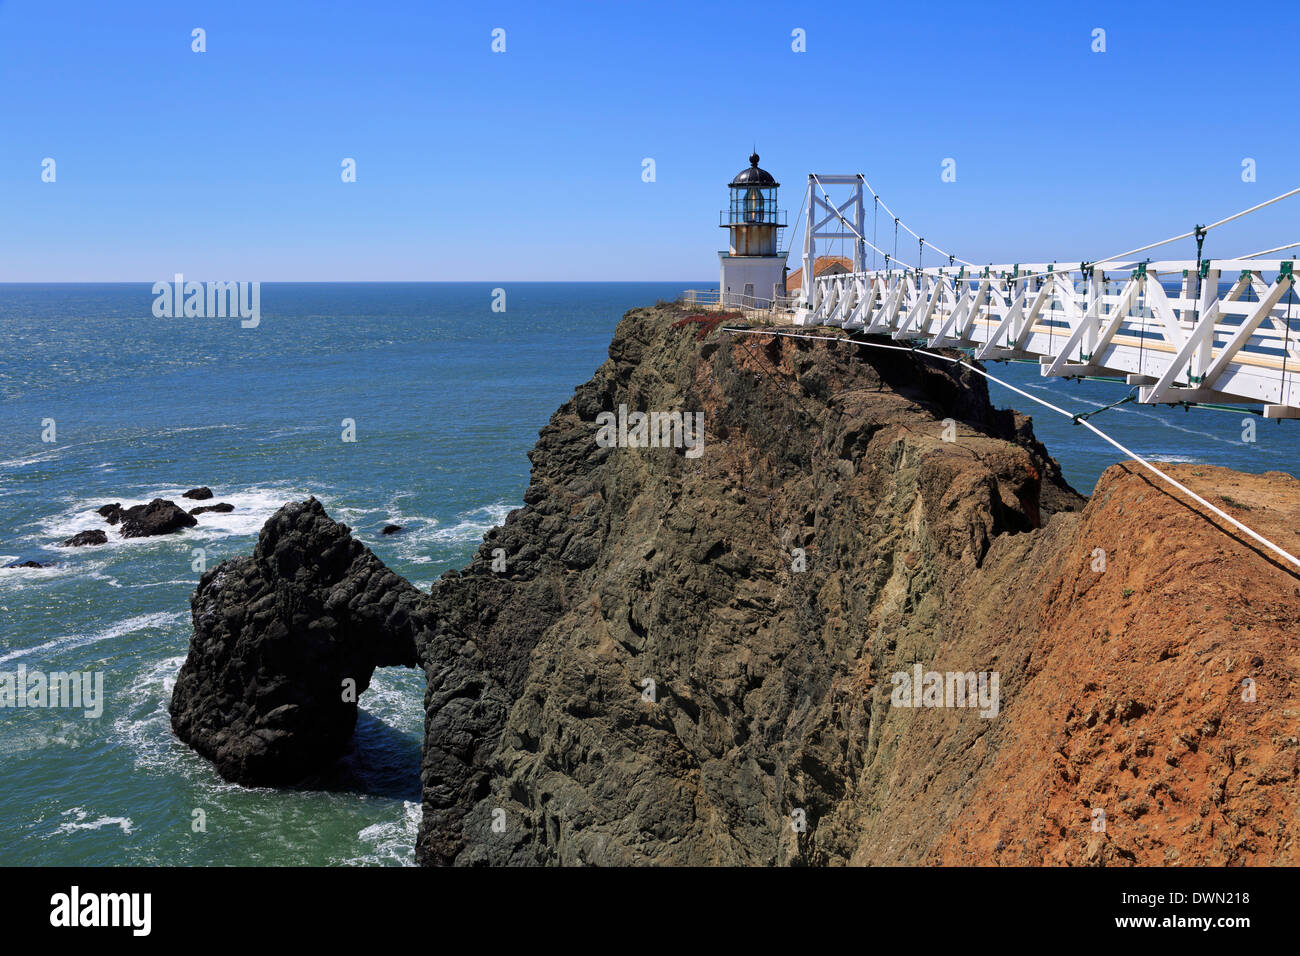 Faro de Punta Bonita, Golden Gate National Recreation Area, Marin County, California, Estados Unidos de América, América del Norte Imagen De Stock